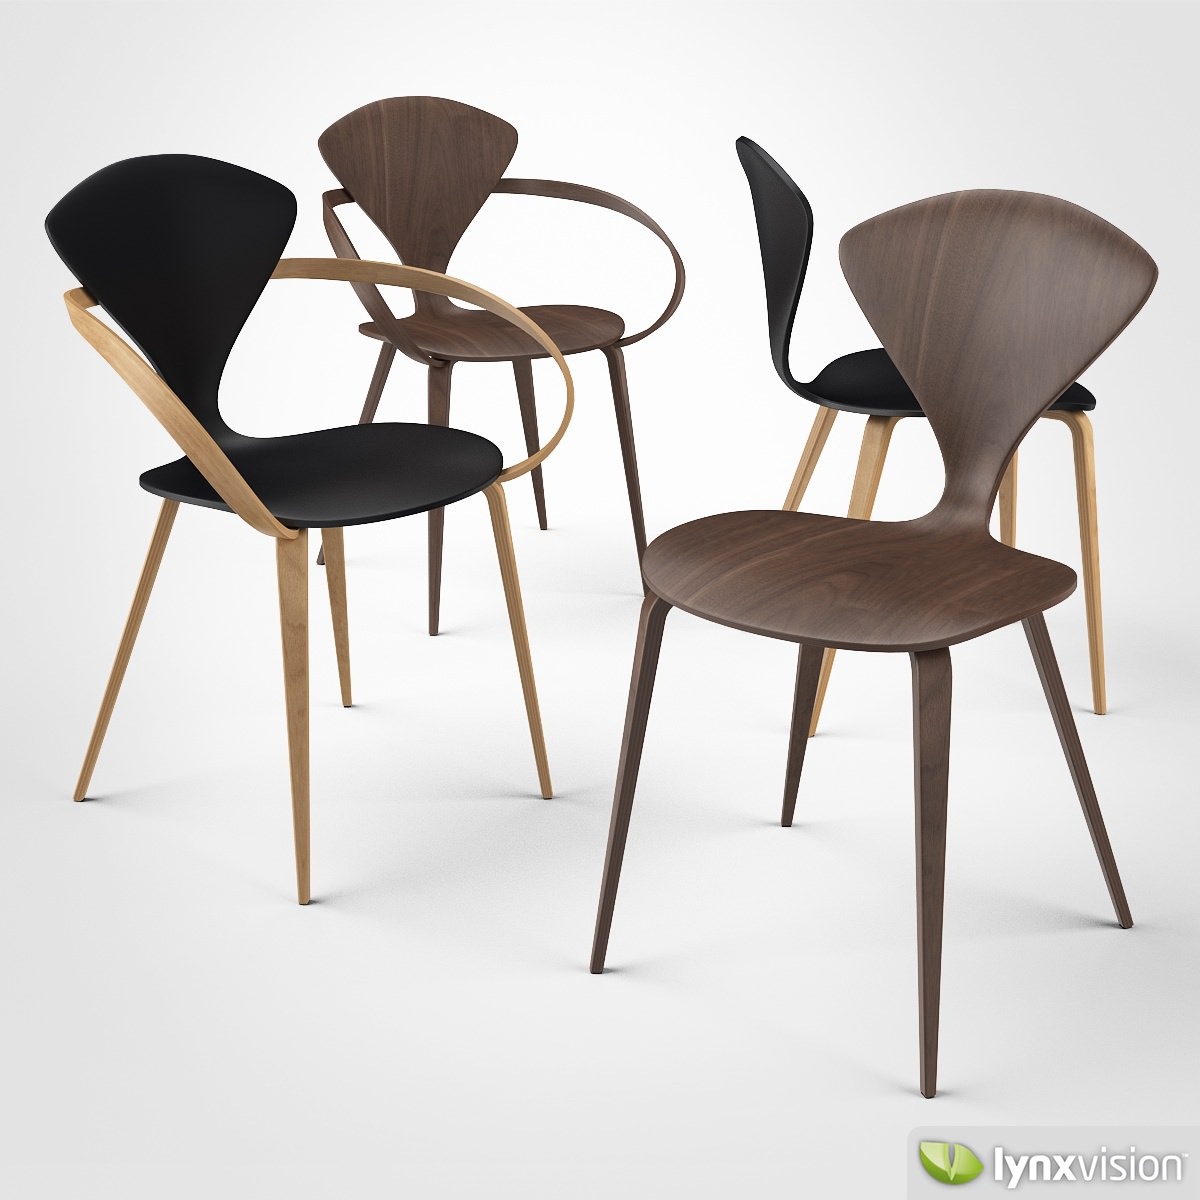 Cherner Side Chair And Armchair 3d Model Max Obj 3ds Fbx Mtl 1 ...